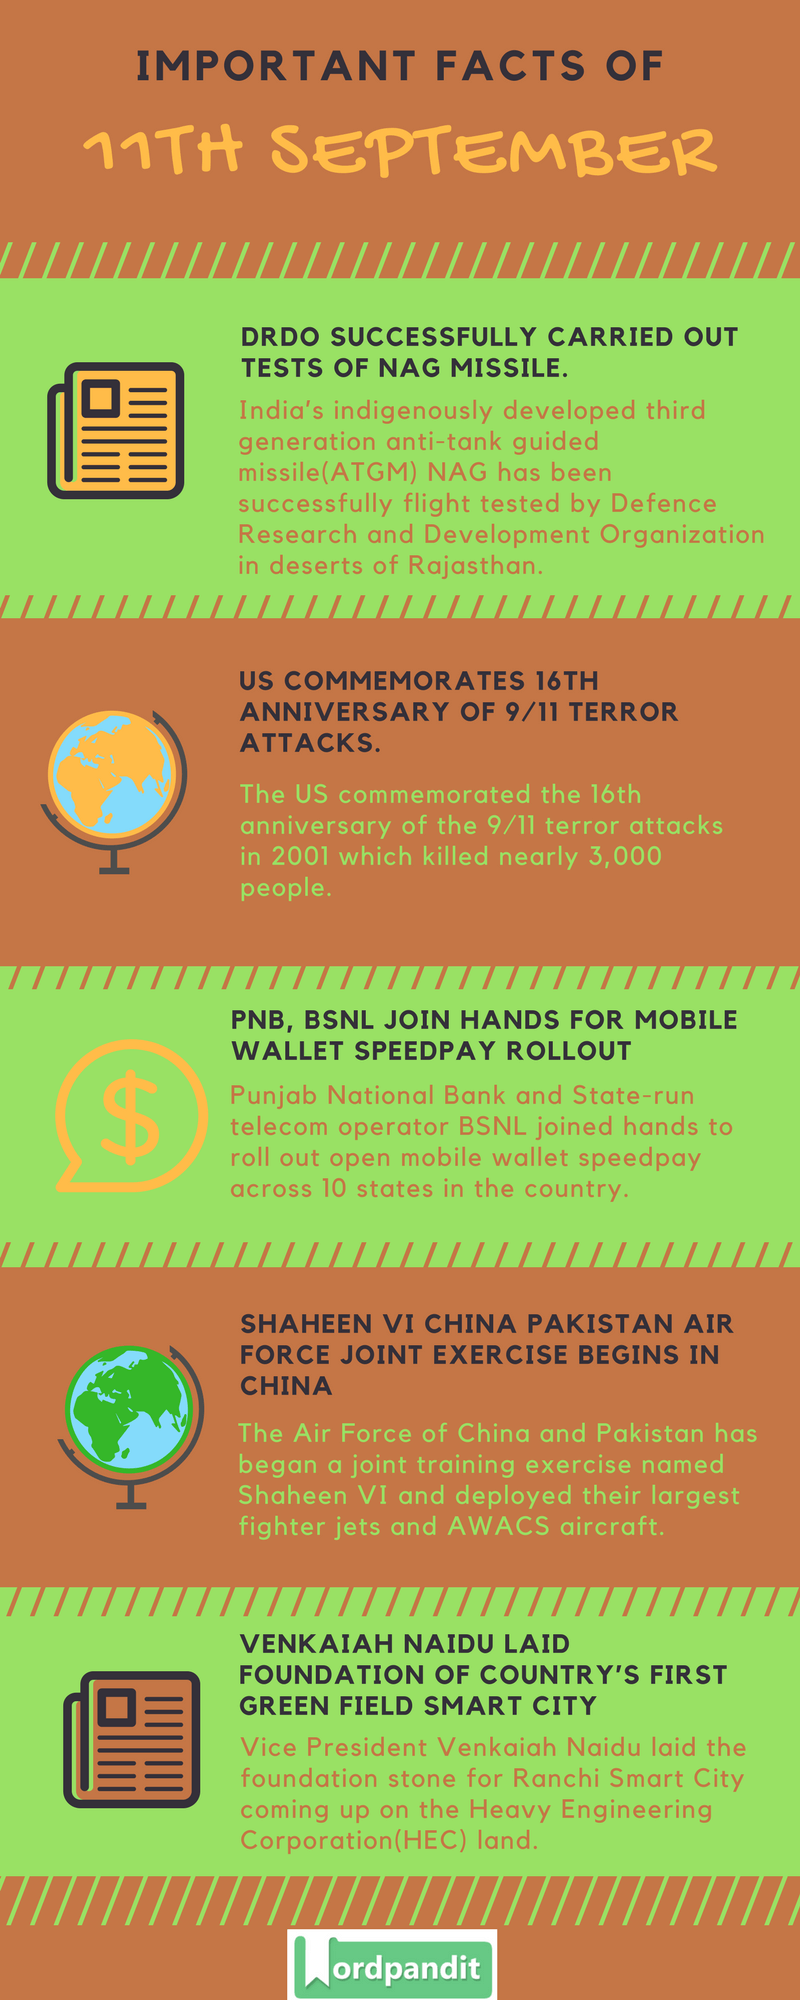 Daily-Current-Affairs-11-september-2017-Current-Affairs-Quiz-september-11-2017-Current-Affairs-Infographic